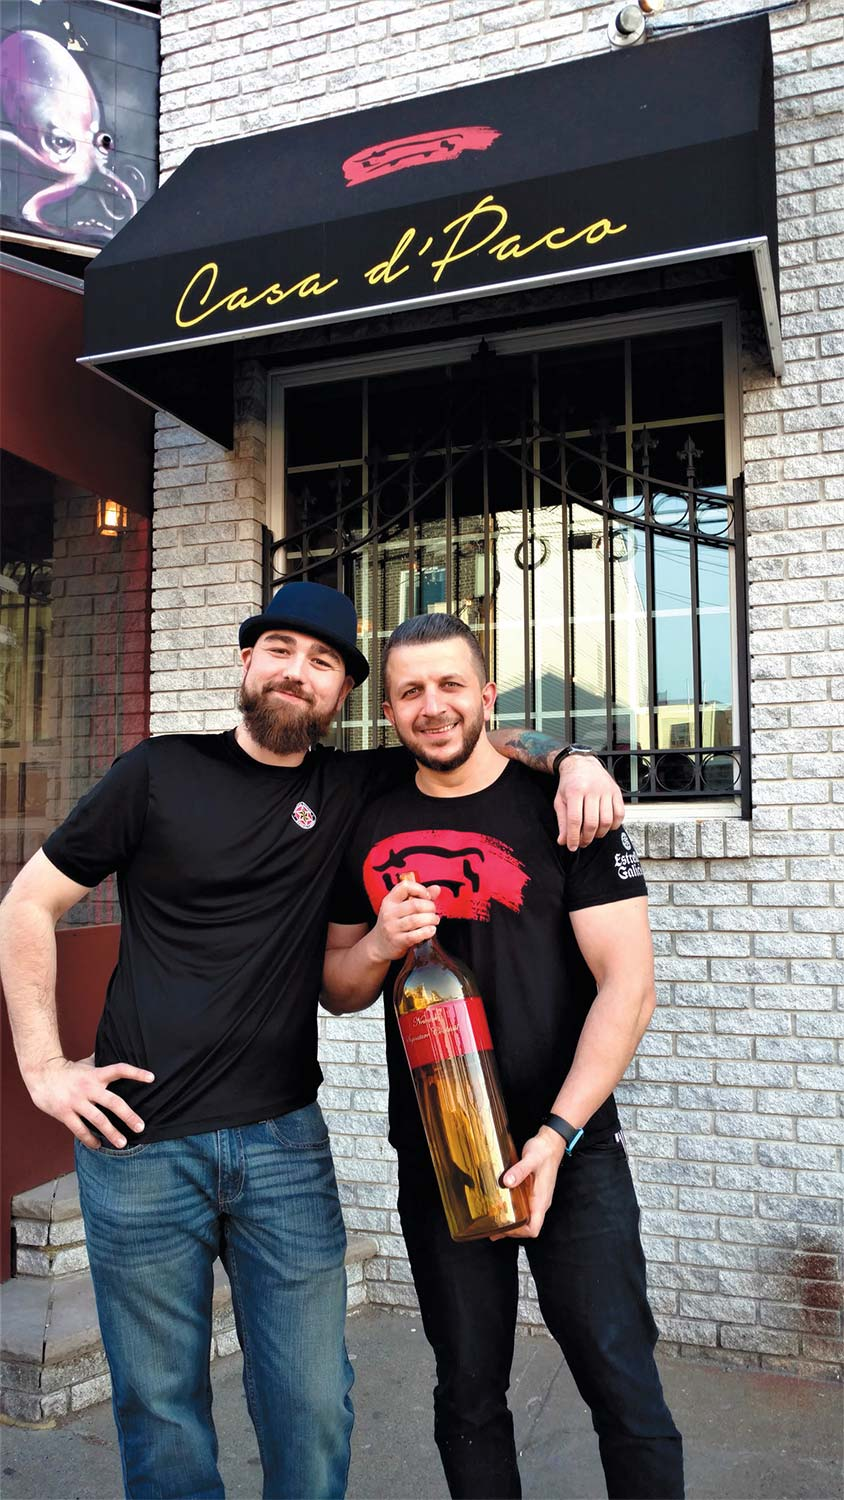 Casa d'Paco owner Angel Leston (left) and Todor, the bartender who created the drink. Trophy by GlassRoots, Newark.